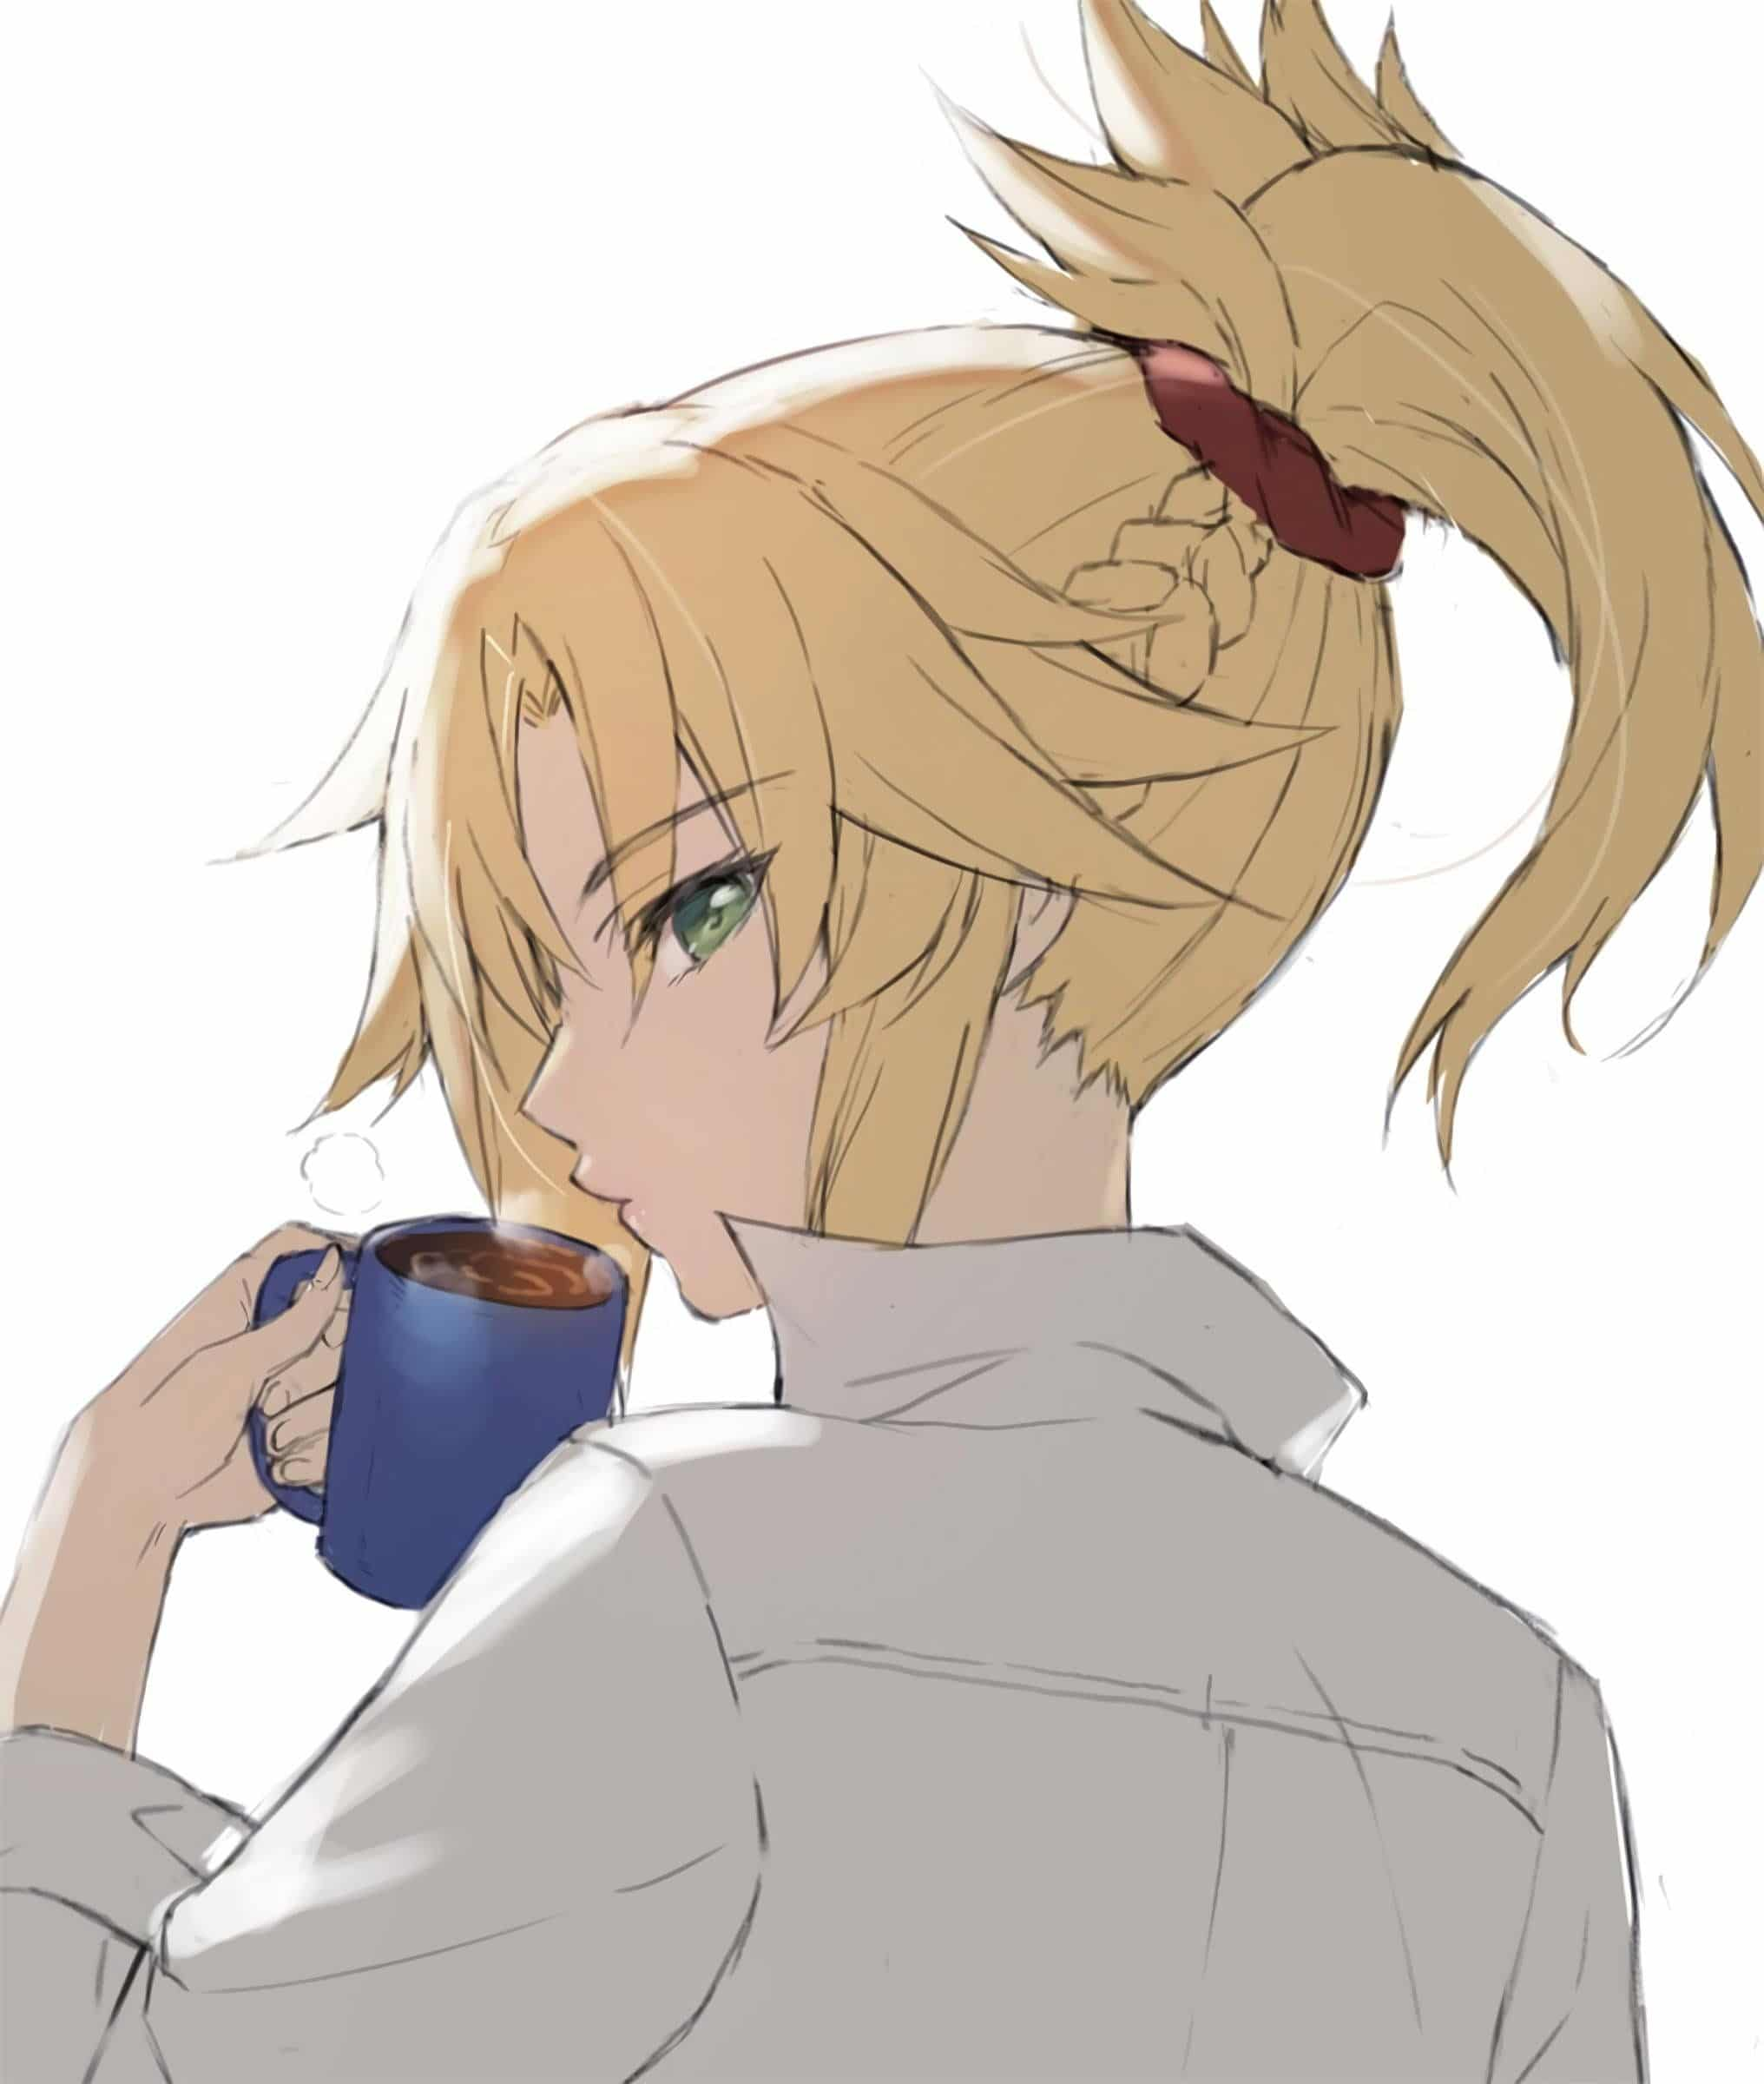 Mordred having her morning coffee